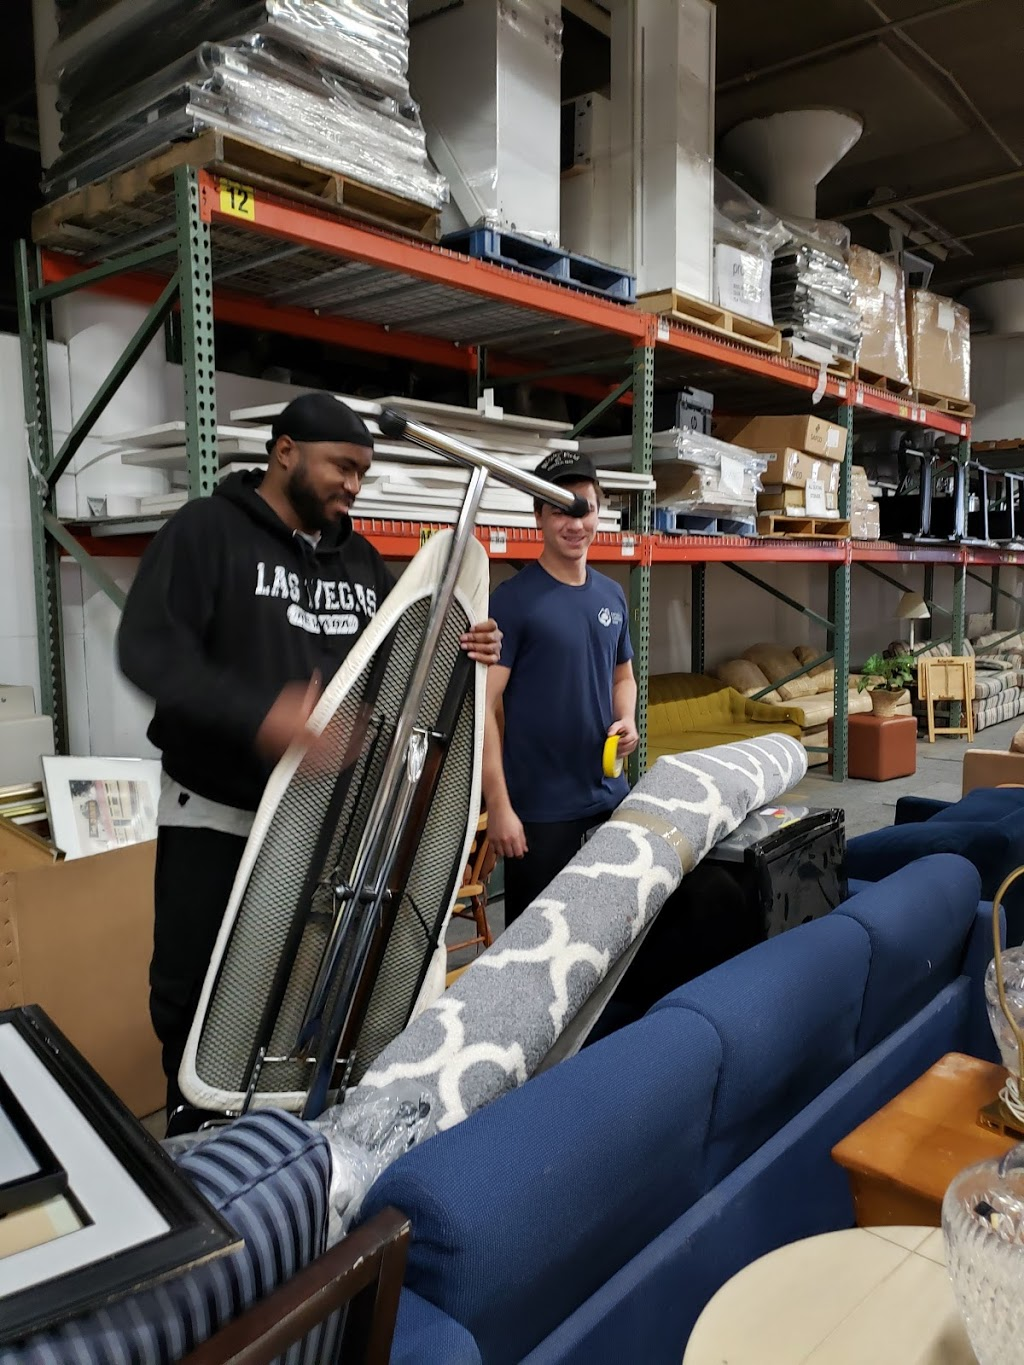 Chicago Furniture Bank - point of interest  | Photo 1 of 6 | Address: 4800 W Roosevelt Rd, Chicago, IL 60644, USA | Phone: (312) 752-0211